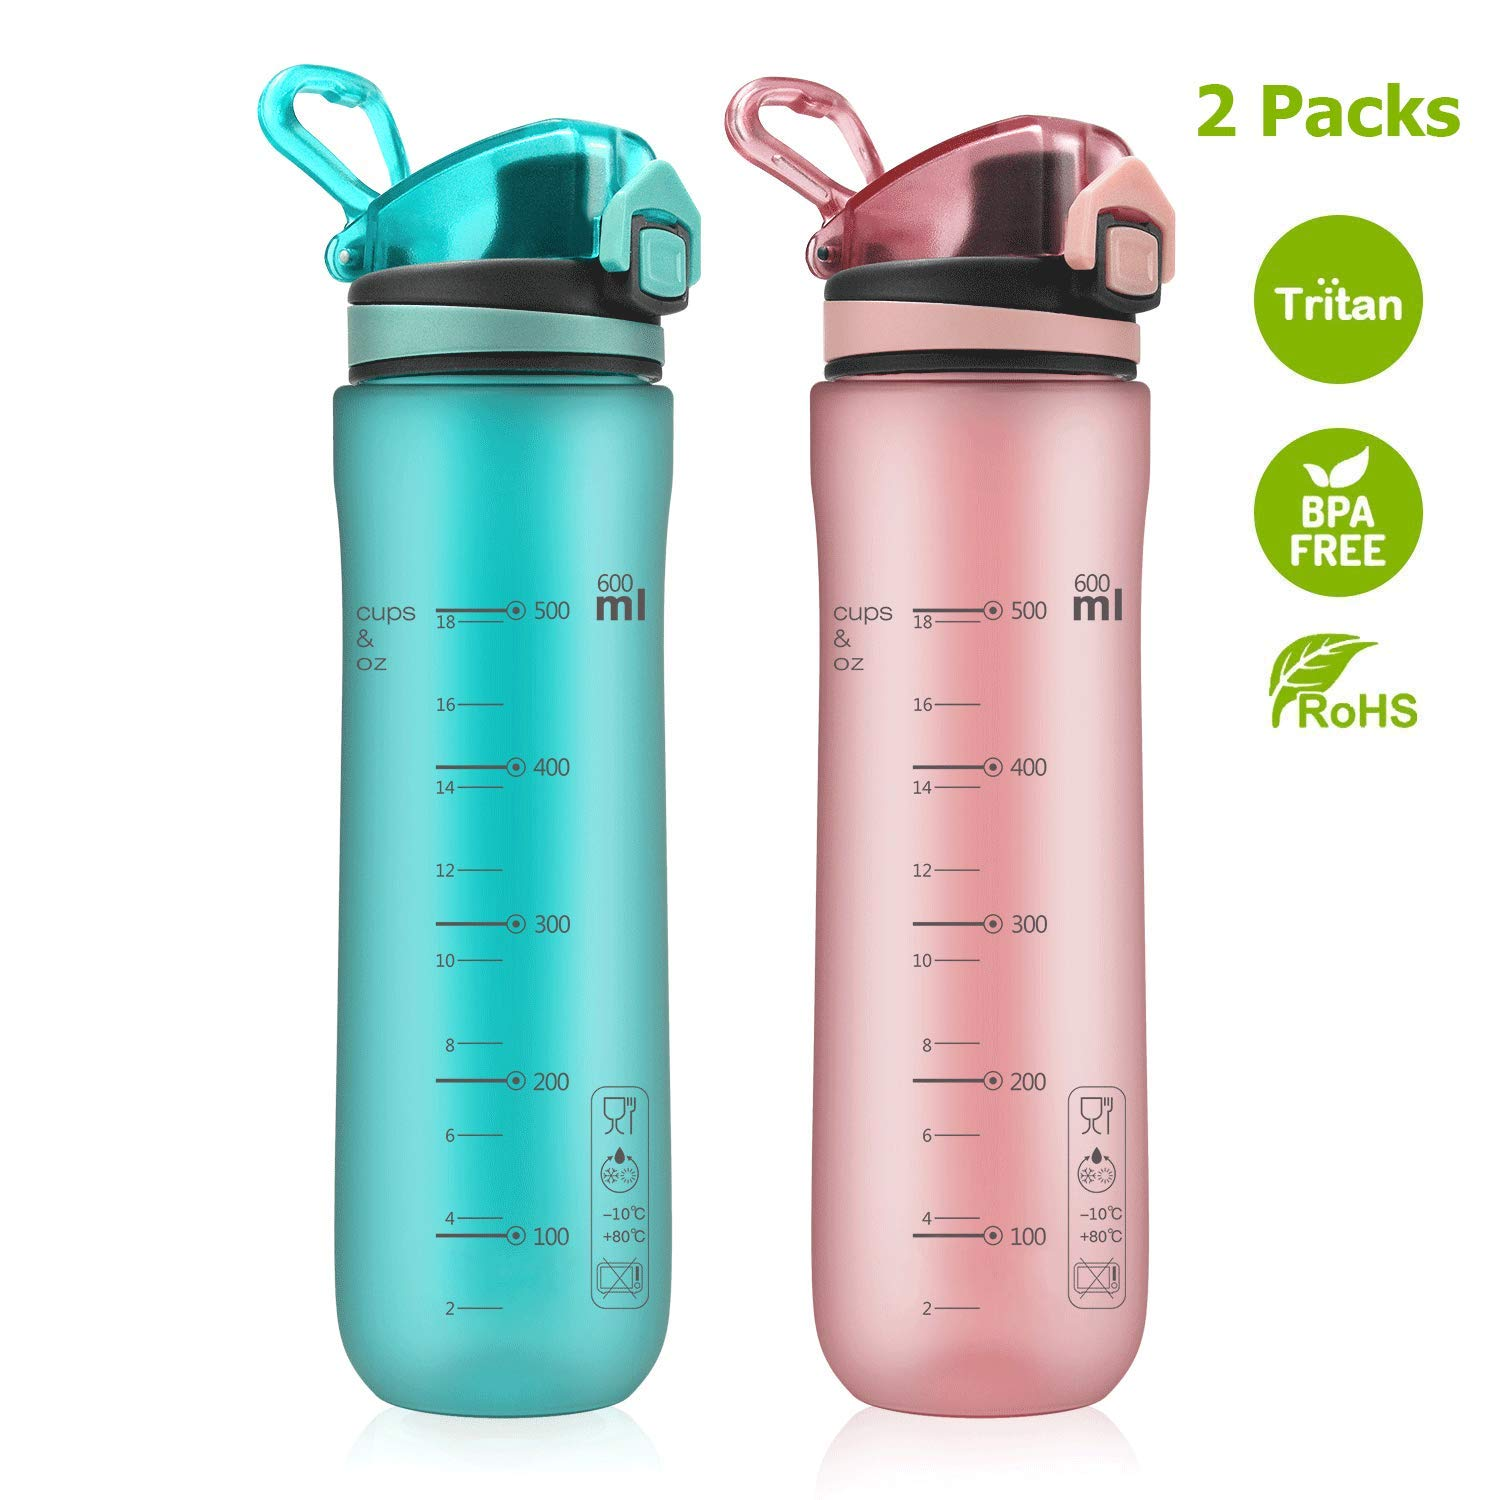 Letsfit Sports Water Bottle, BPA-Free Tritan Plastic Water Bottle with Locking Flip-Flop Lid, Leakproof and Dustproof Cap, Carry Loop, 21oz Bottle for Outdoor Hiking Camping Travel